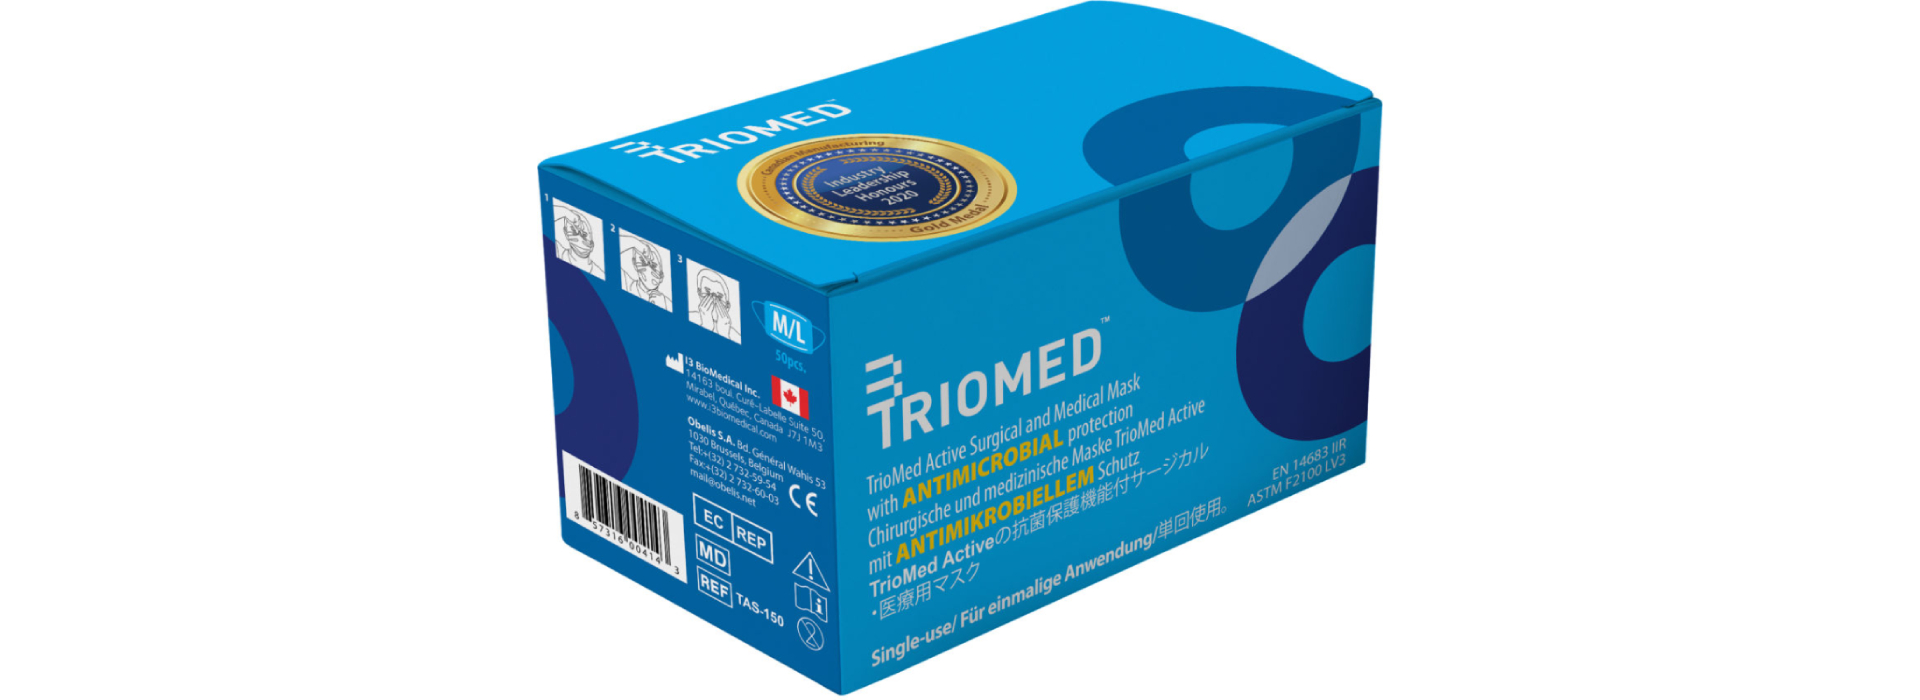 [Triomed active technology